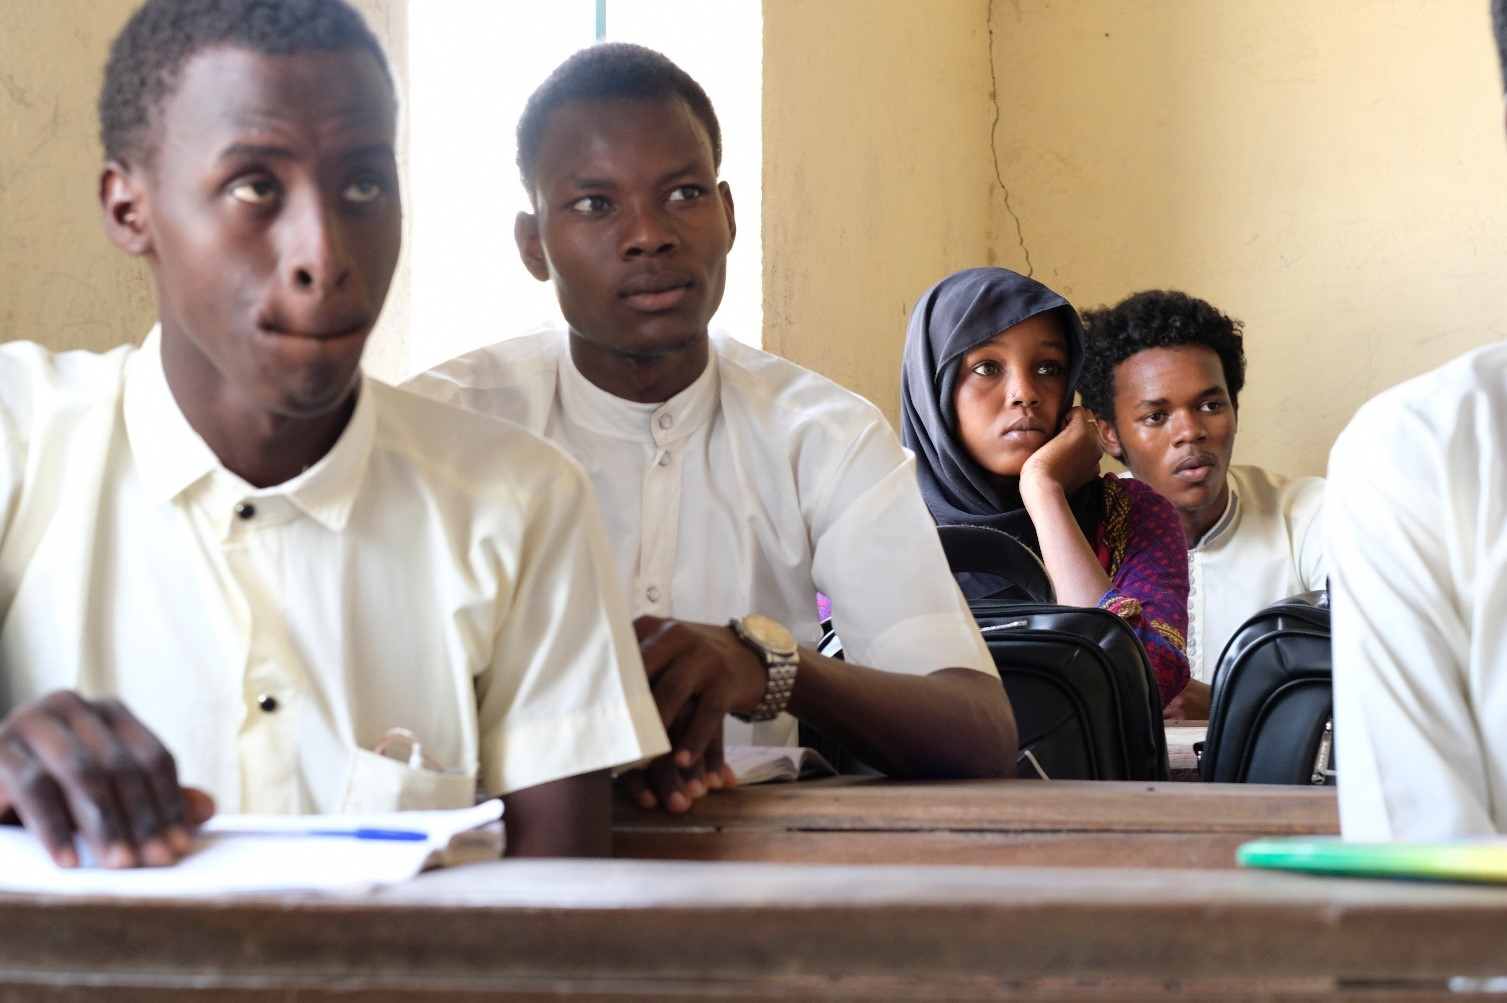 A row of young boys and a girl sitting one behind another in a classroom.